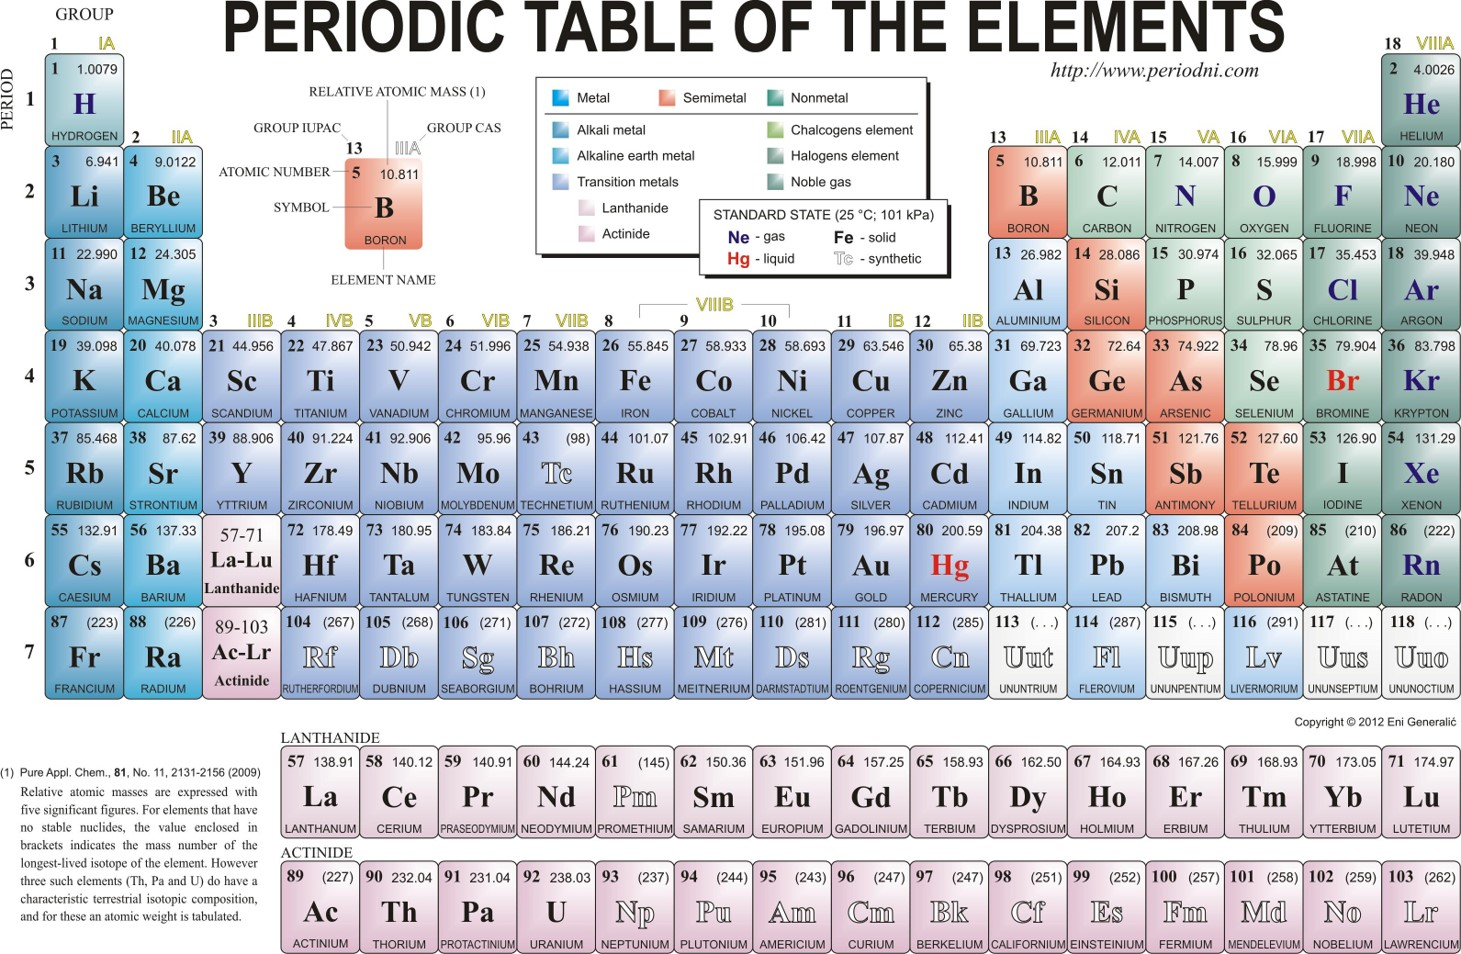 Ch105 Chapter 2 Atoms Elements And The Periodic Table Chemistry Diagrams Electron Configurations Of Figure 21 Some Examples Pure Include A Bismuth Bi Heavy Metal Is Used As Replacement For Lead In Medicines